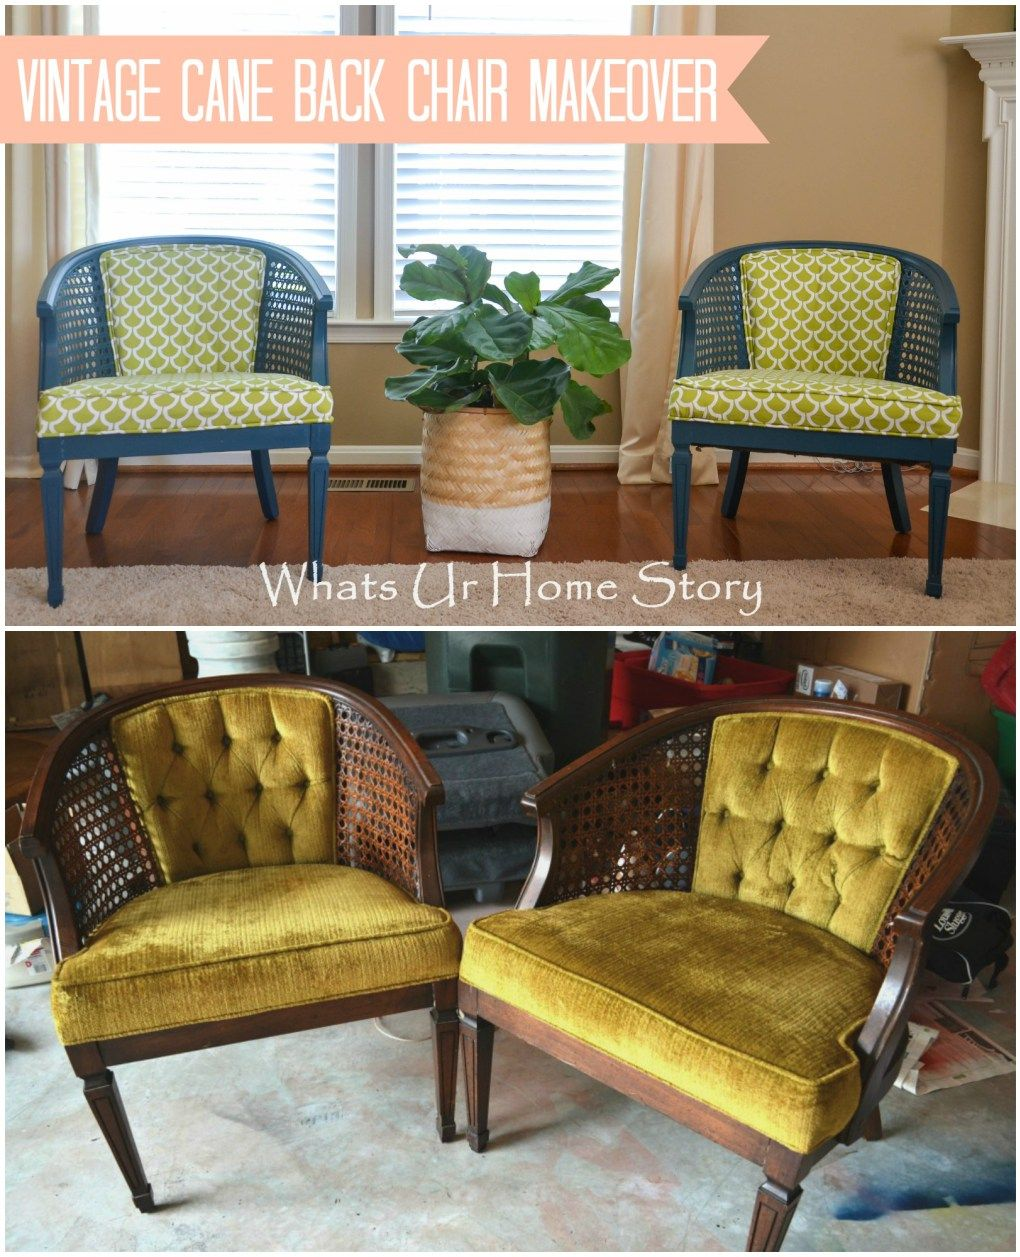 antique cane chair makeover, How to Reupholster a Chair - How To Reupholster A Chair Tutorial Chair Makeover And DIY Furniture